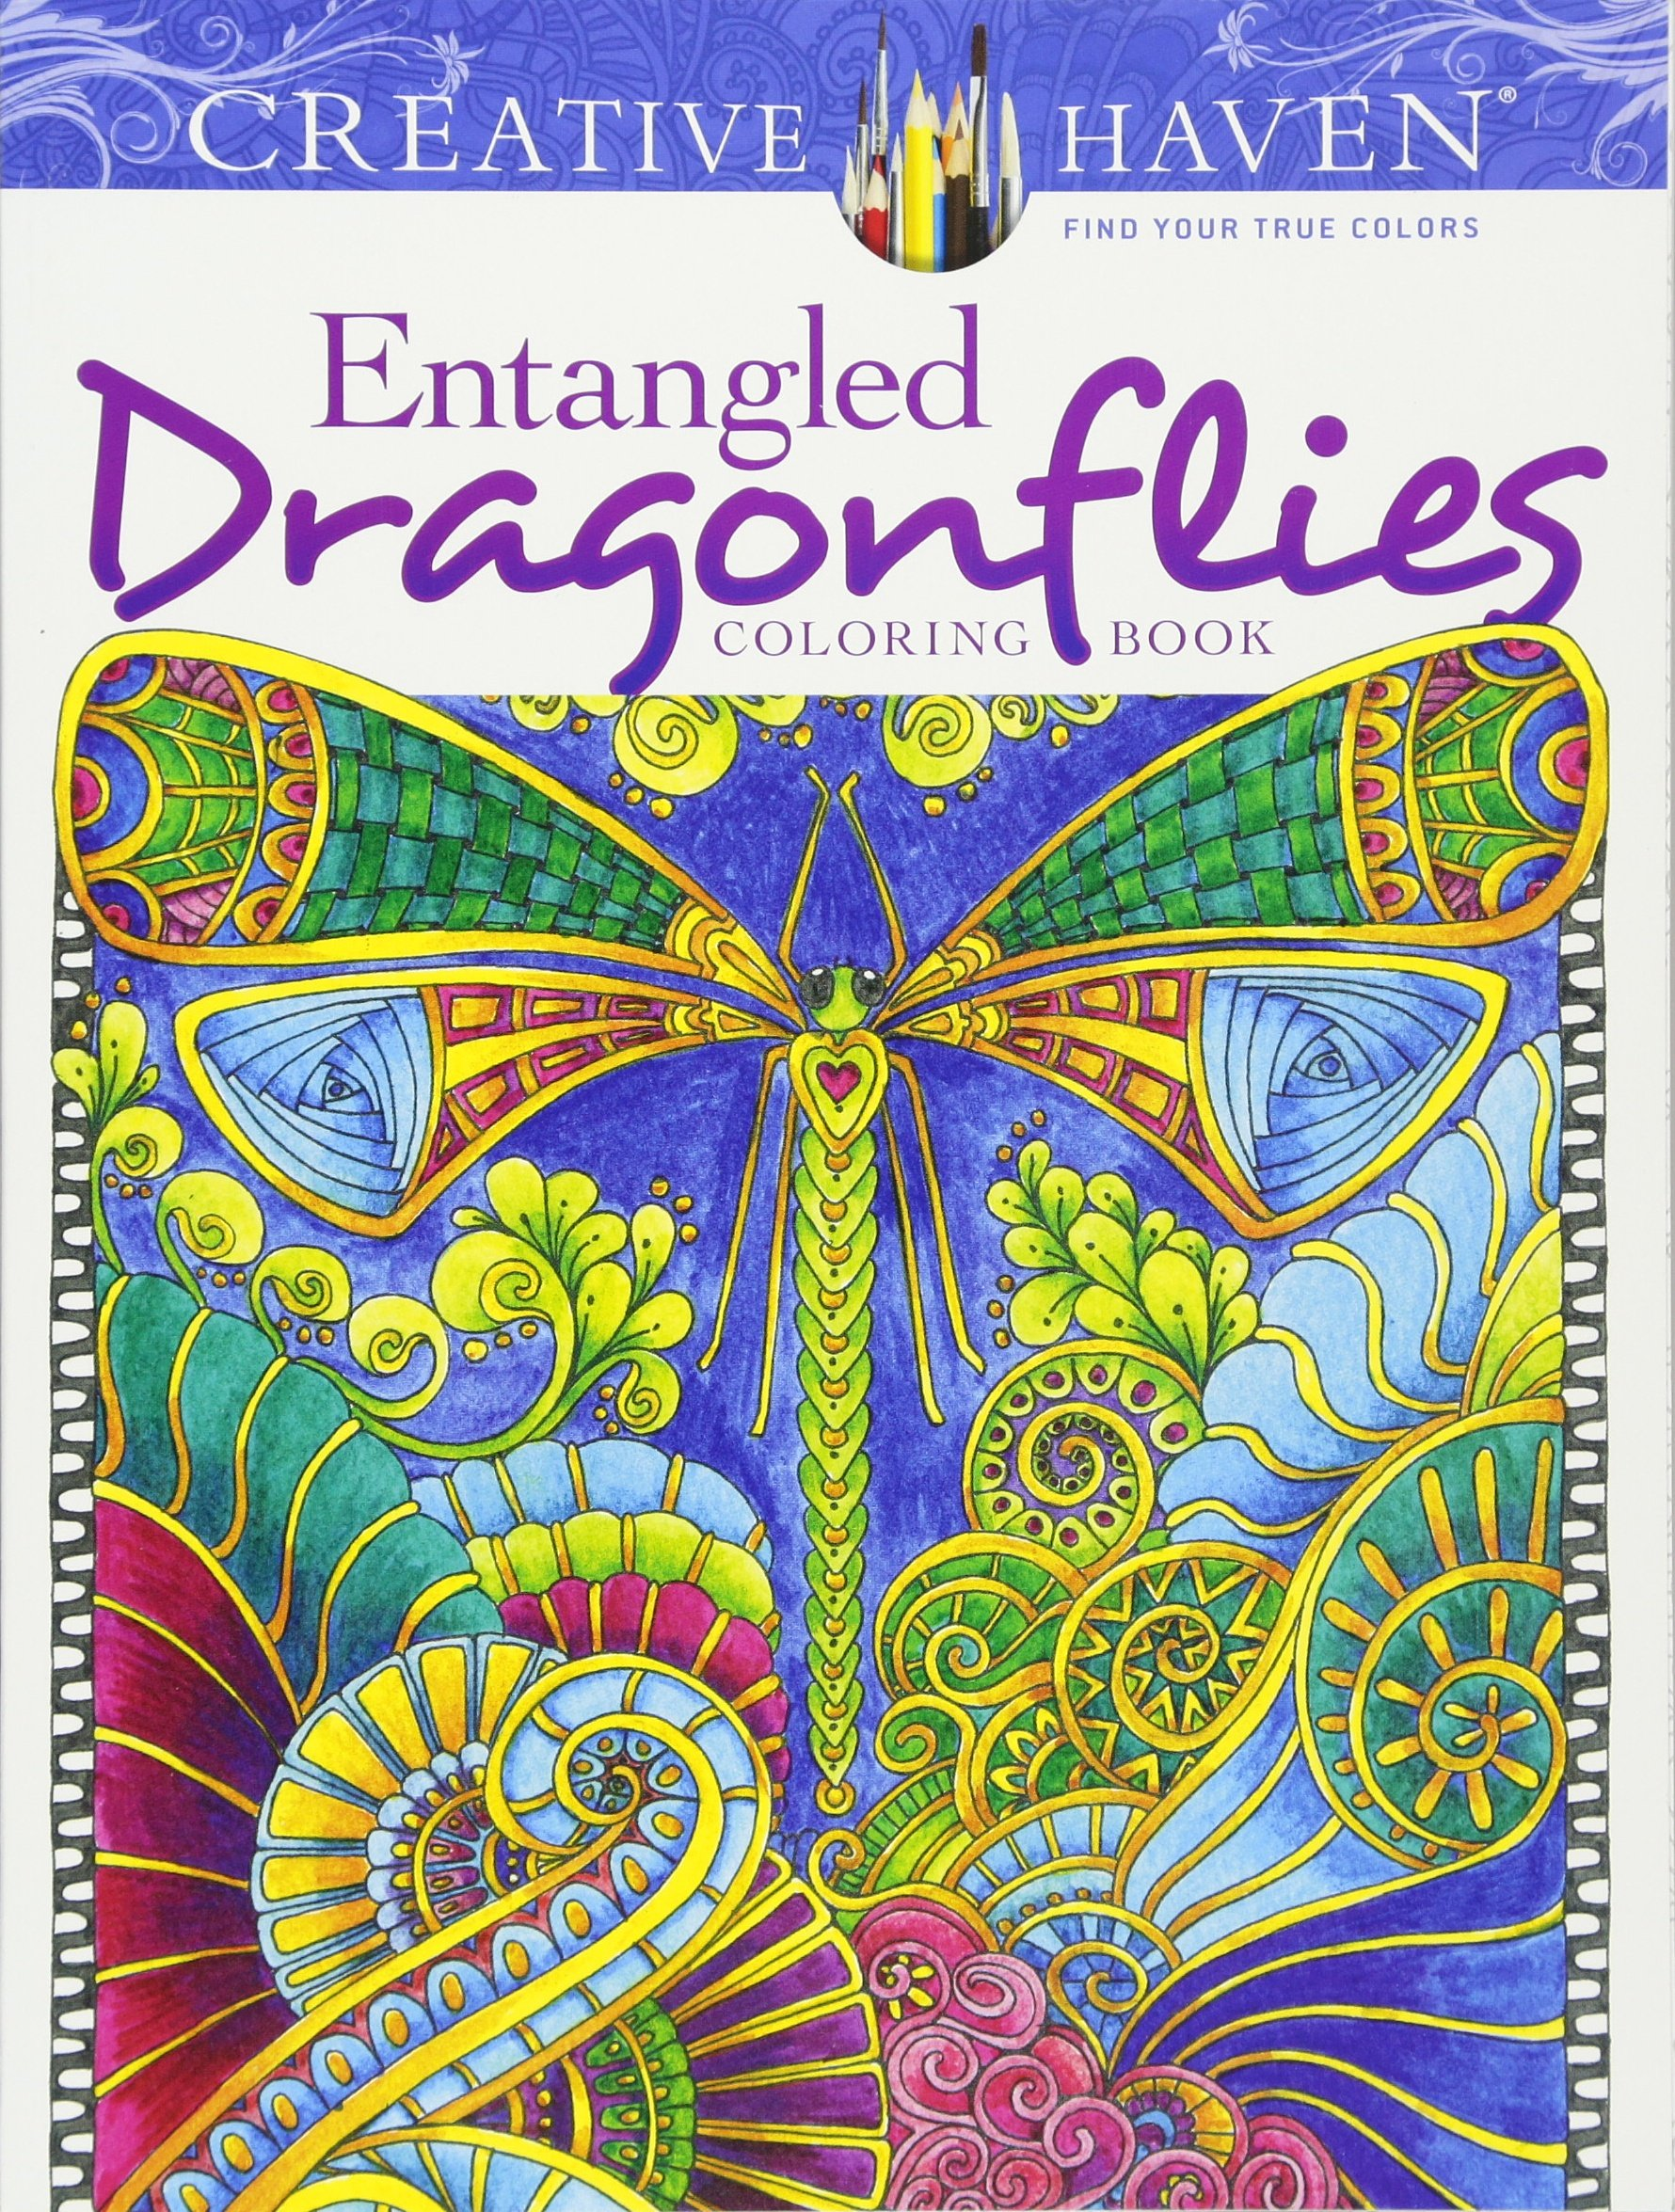 Creative haven entangled dragonflies coloring book adult Coloring books for adults on amazon